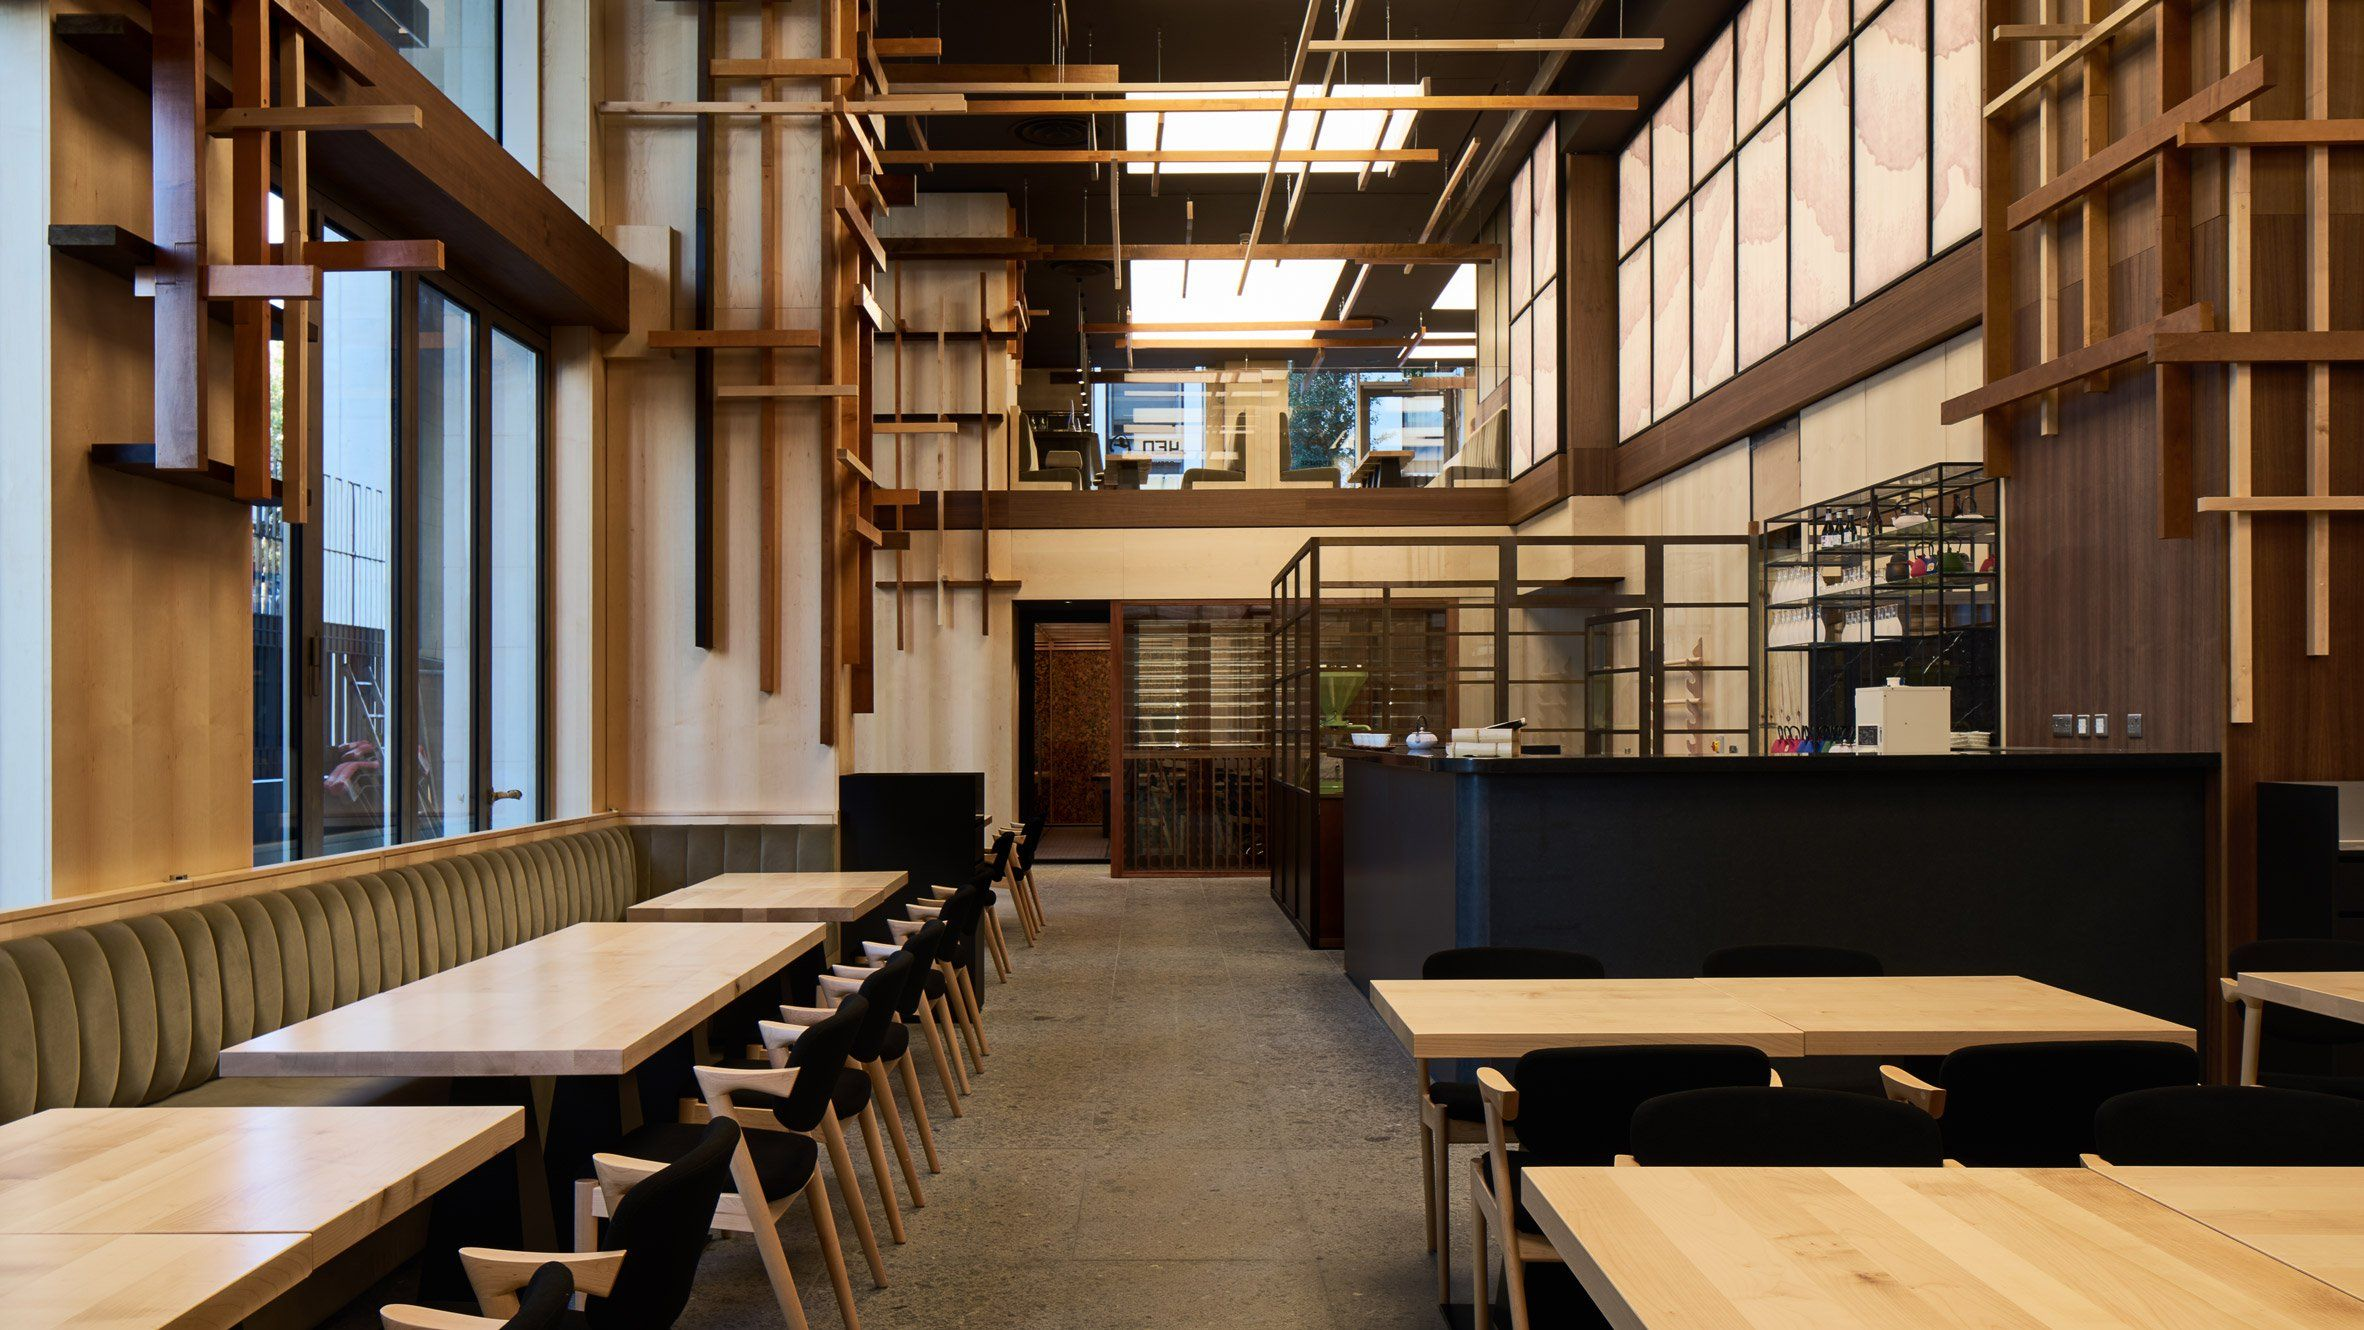 The Wood Lined Interior Of This Japanese Restaurant In London Was